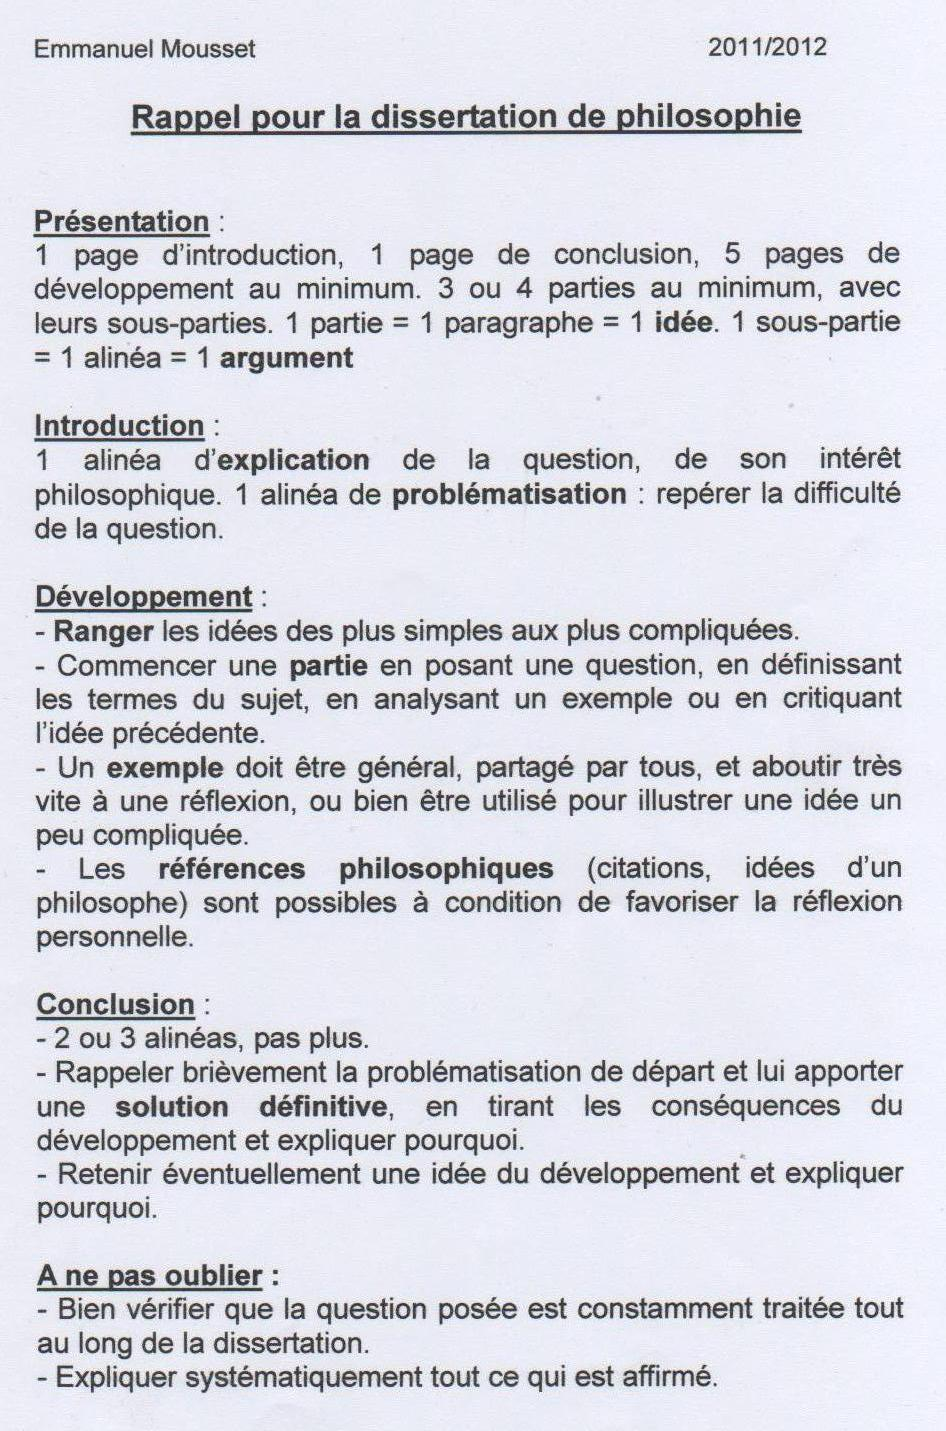 Introduction pour une dissertation en philosophie